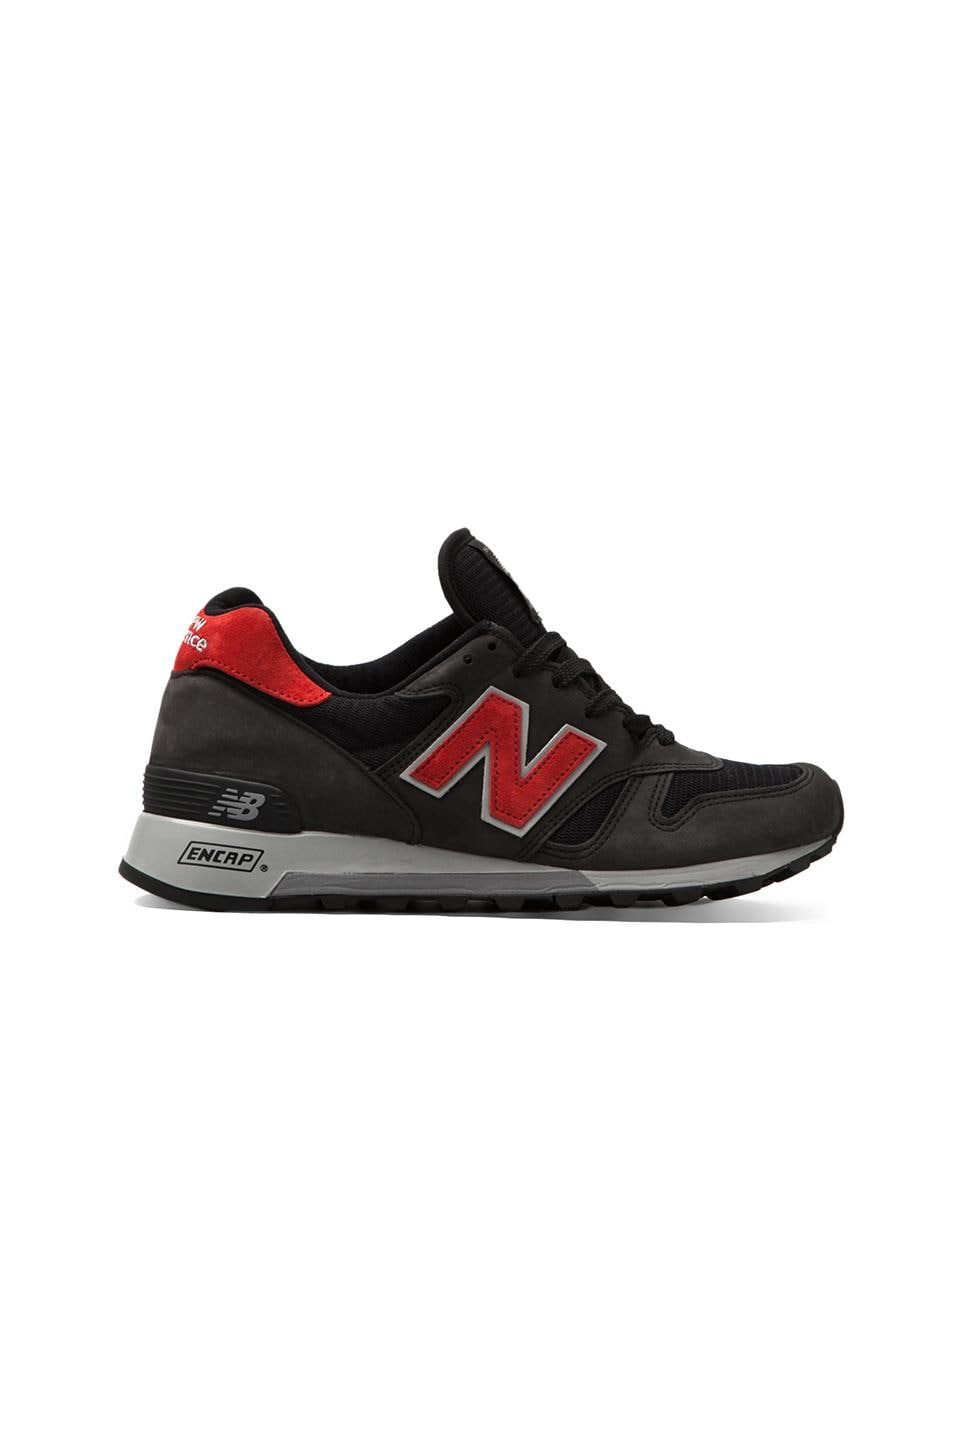 New Balance Made in USA M1300 in Black/Red